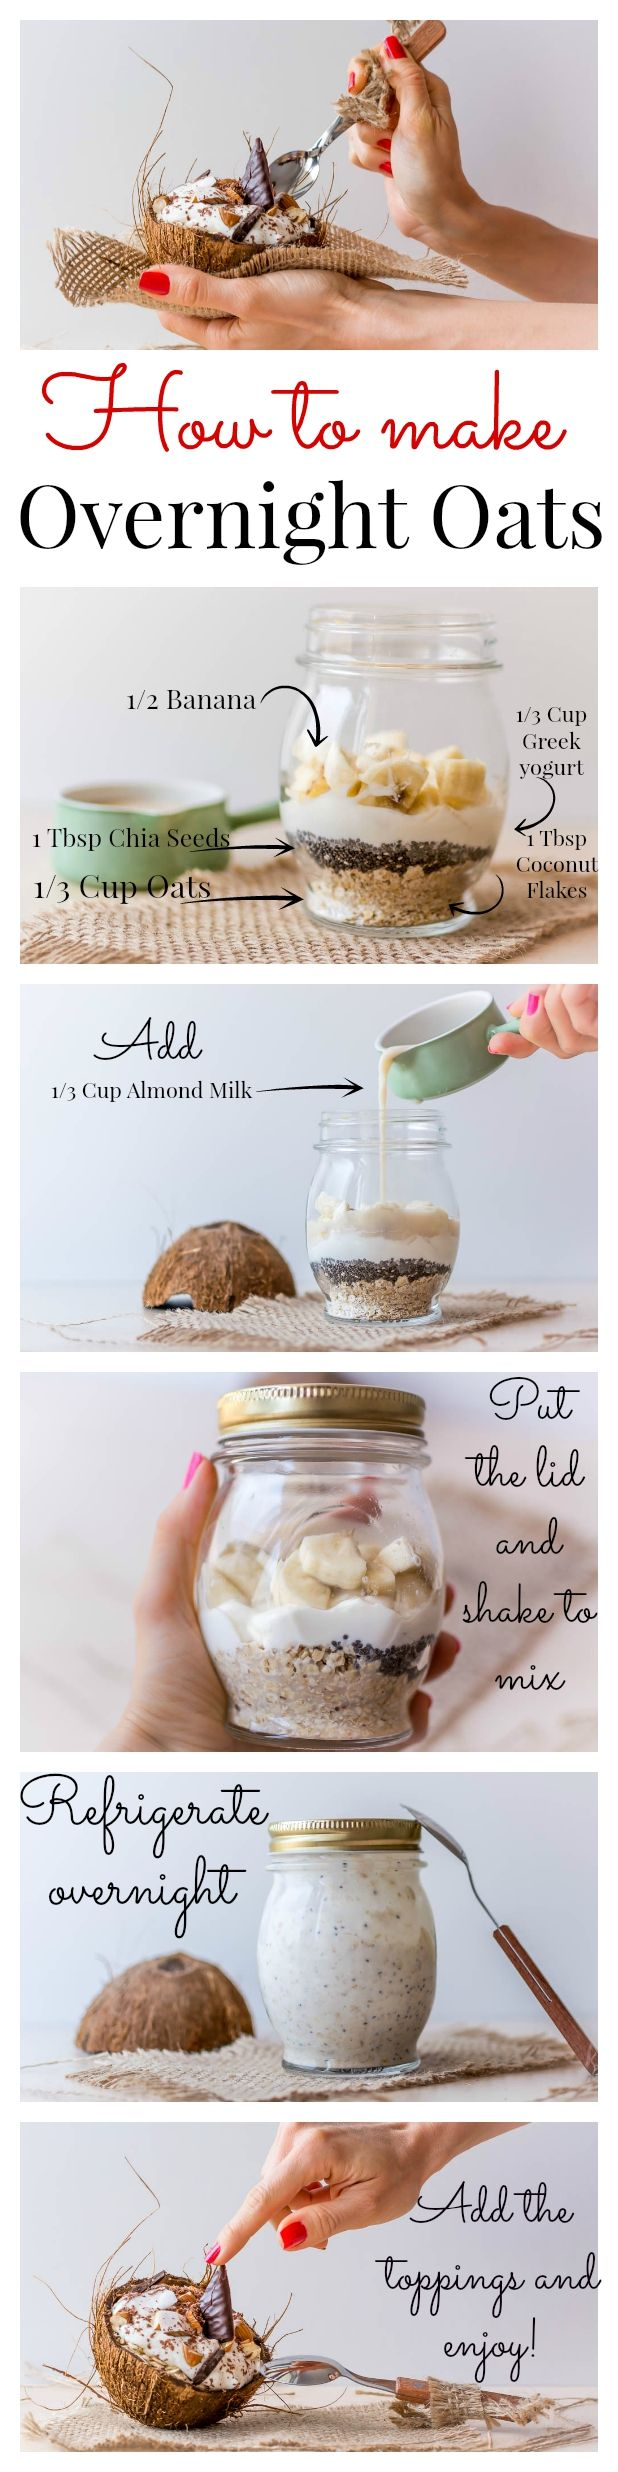 How to make overnight oats with coconut milk